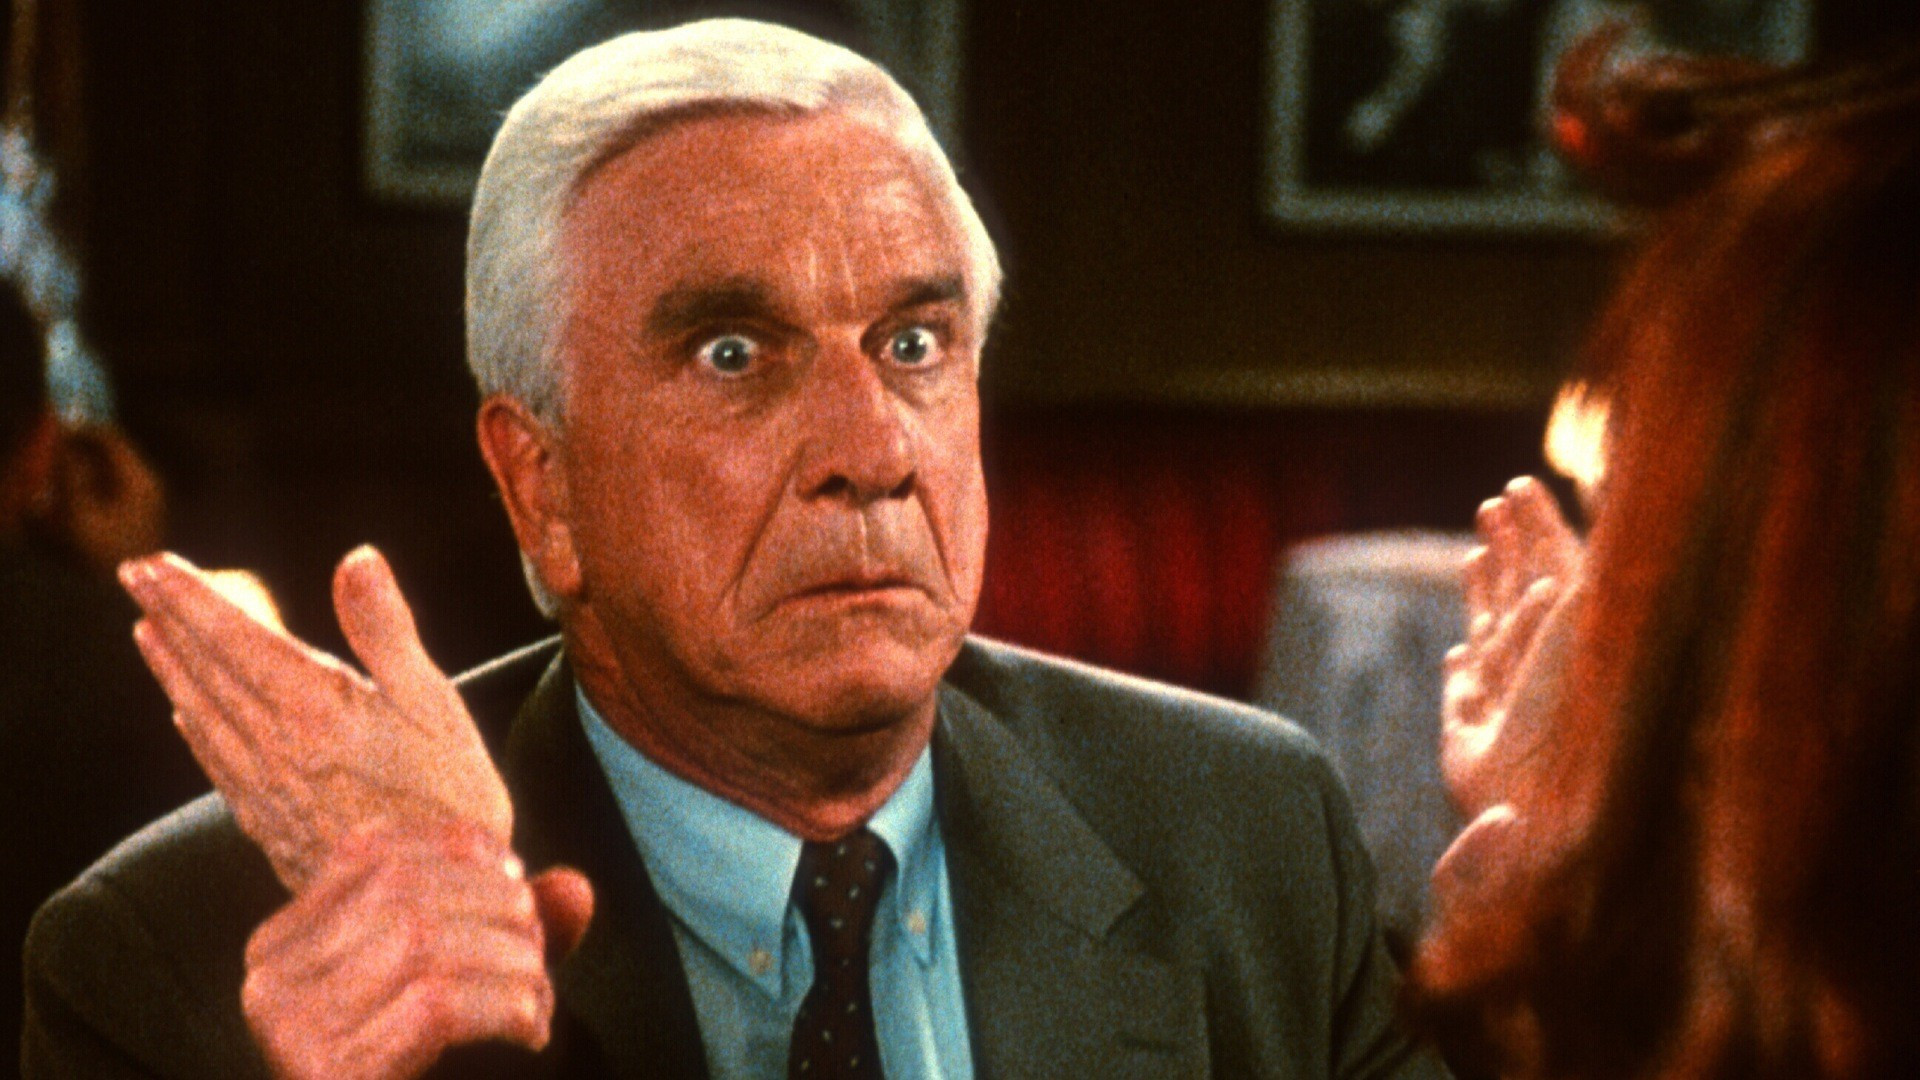 The Naked Gun 2½: The Smell of Fear (1991)